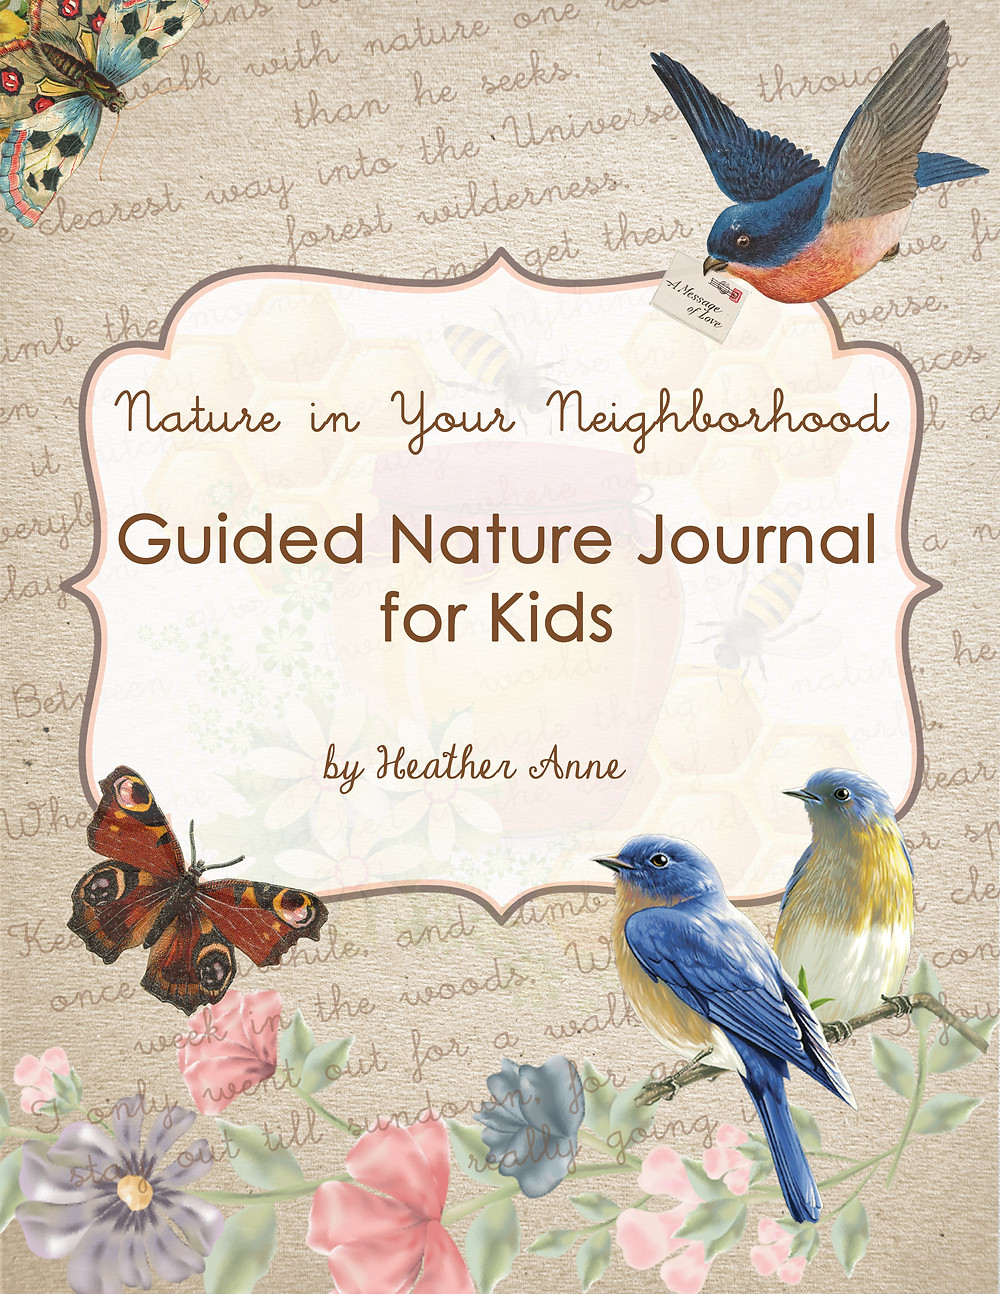 Printable nature journal download digital ebook for homeschooling nature study